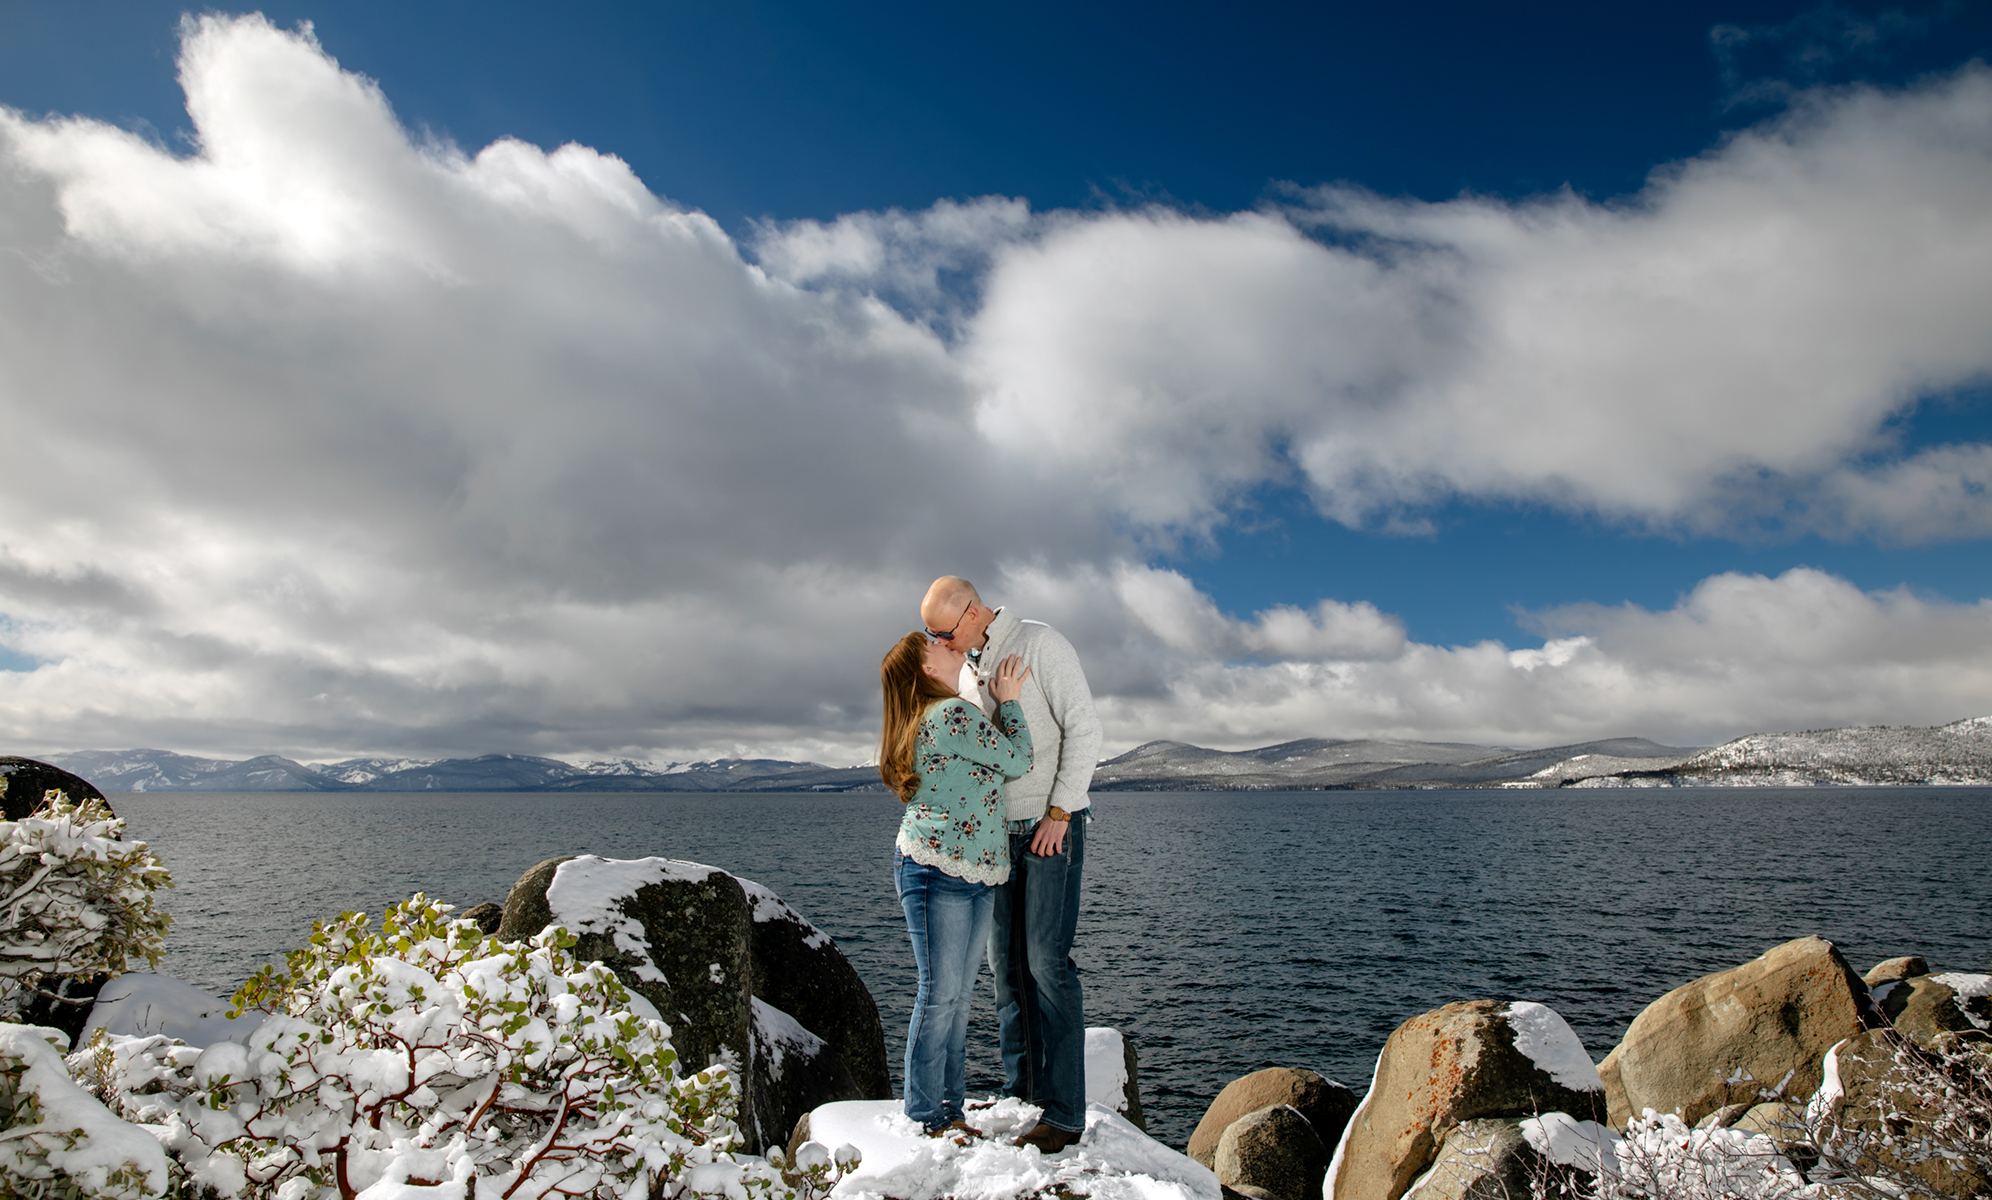 , Lake Tahoe Wedding Photography. Lake Tahhoe engagements session. Lake Tahoe family photography. Reno wedding photography. Reno engagements. Reno photographer. Tahoe.